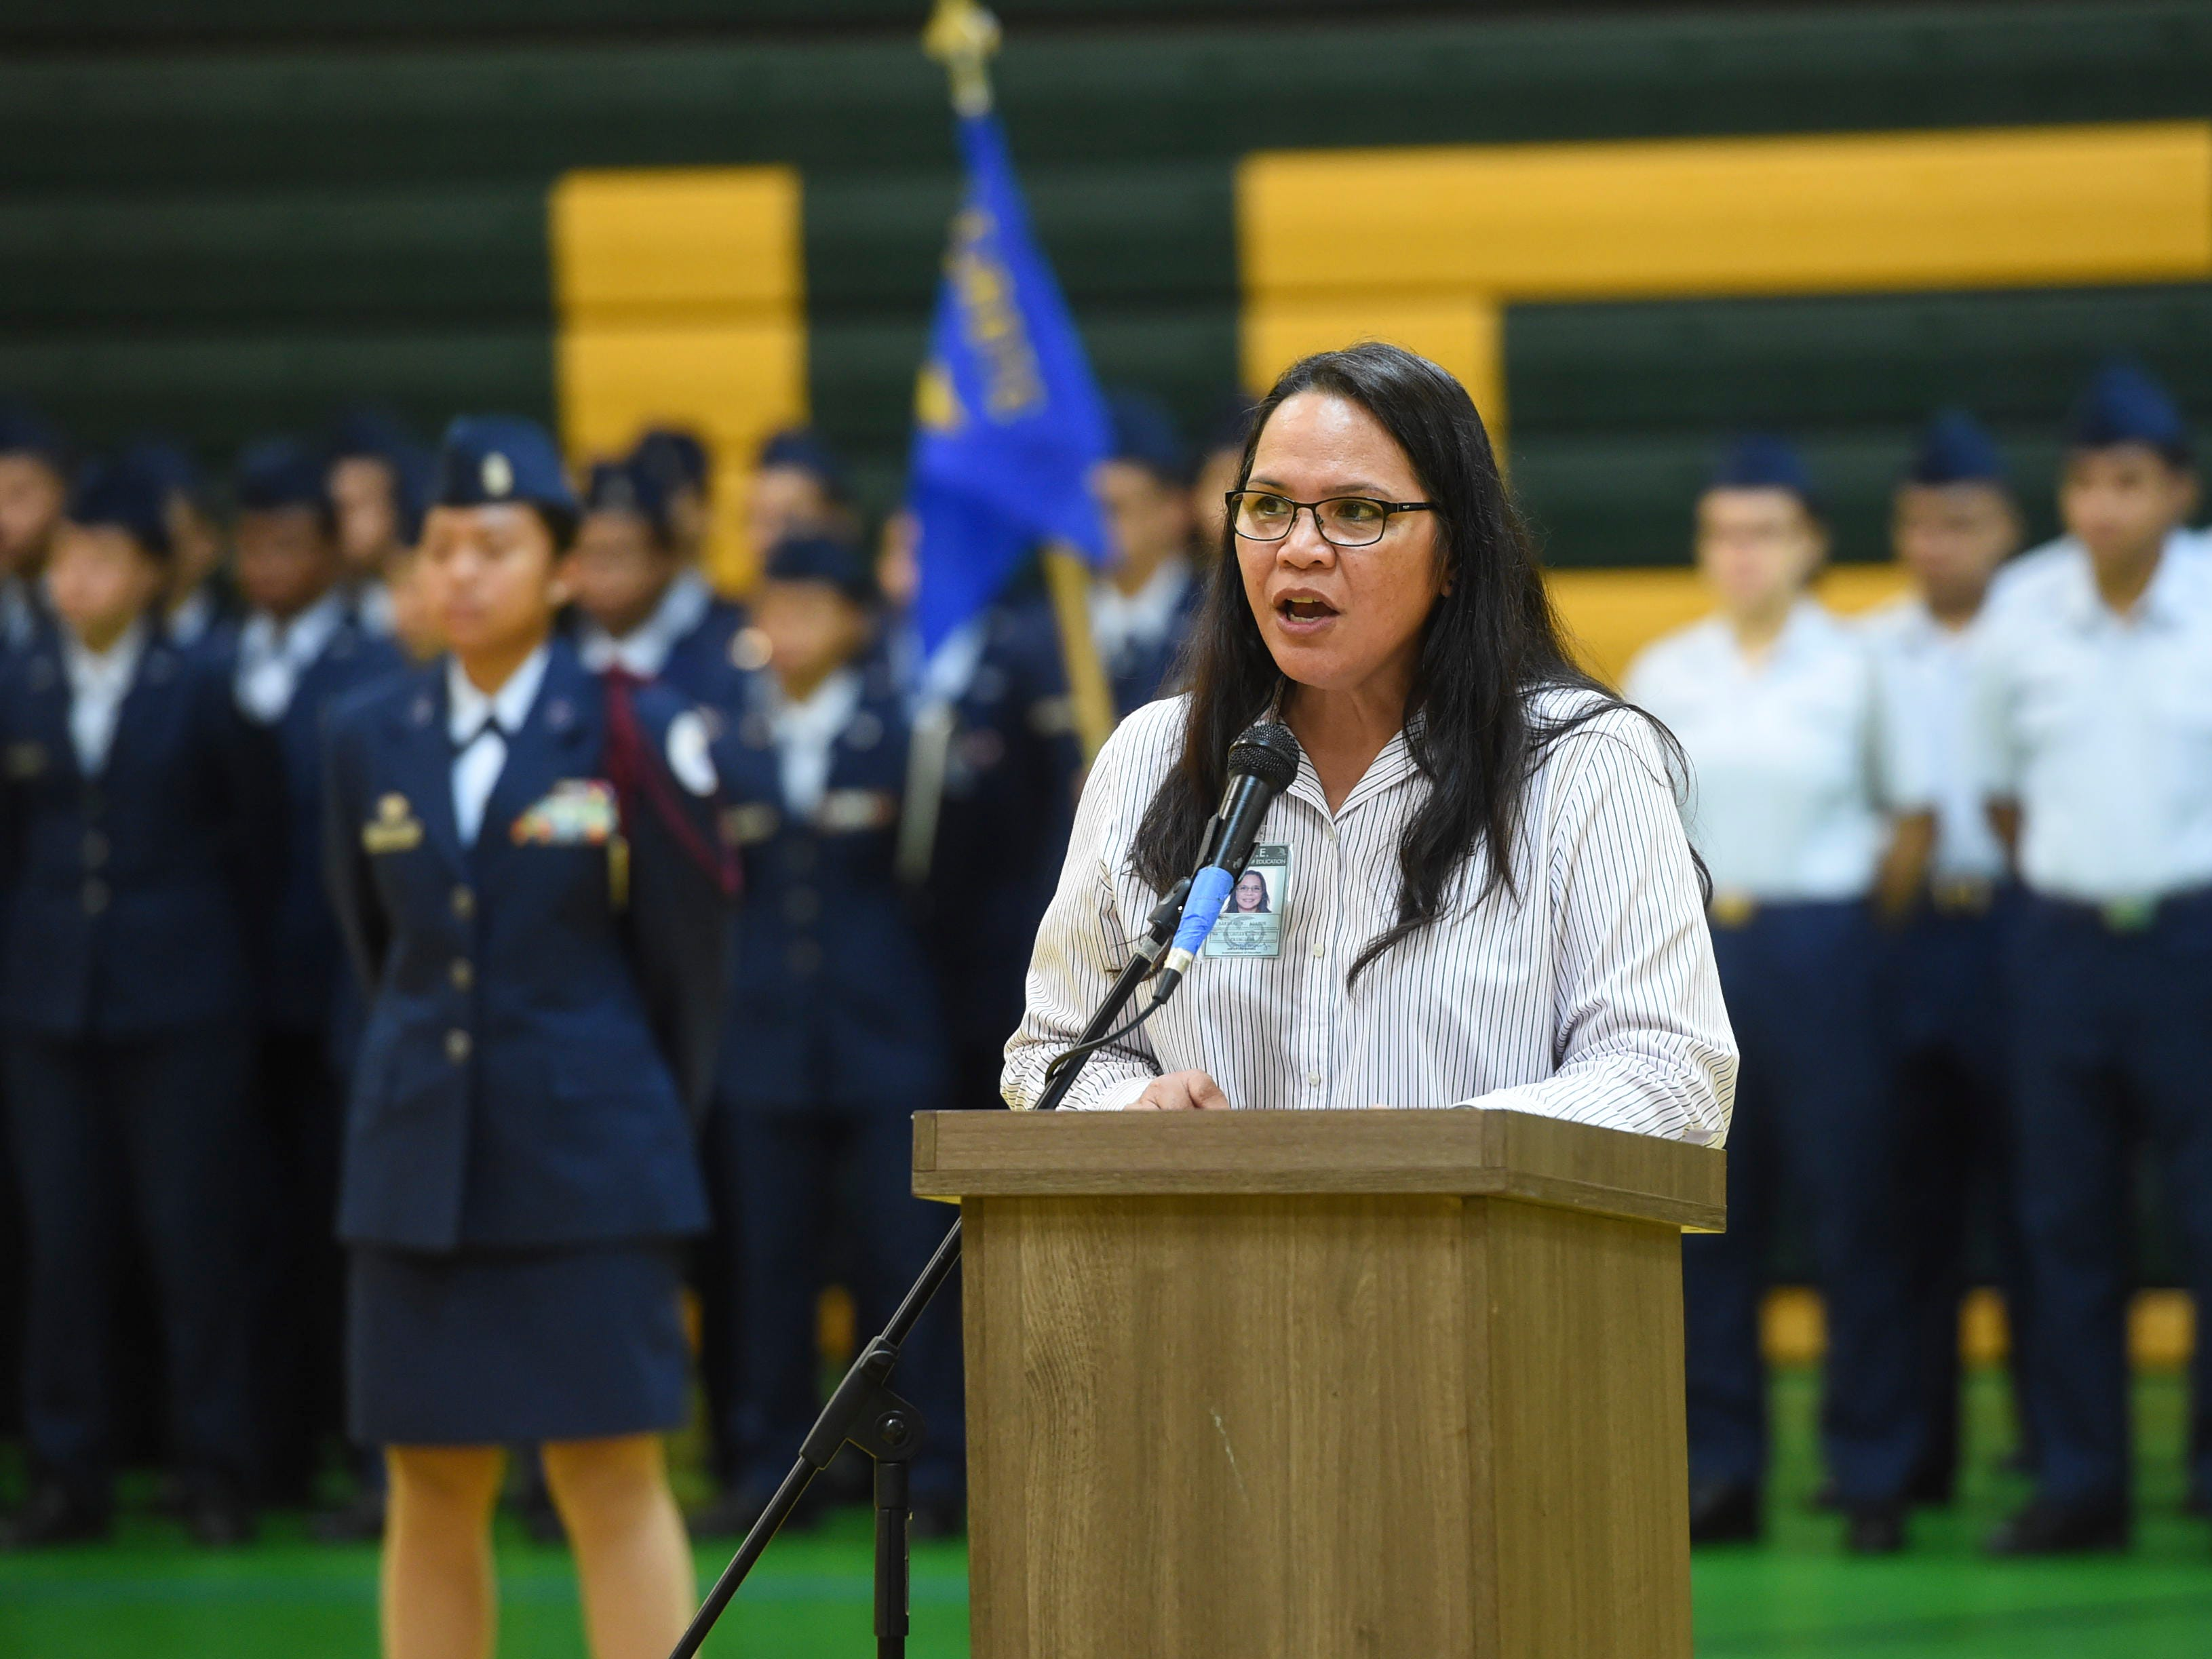 John F. Kennedy High School Principal Barbara Adamos gives her opening remarks during the JFK High School Veterans Recognition Ceremony, Nov. 9, 2018.